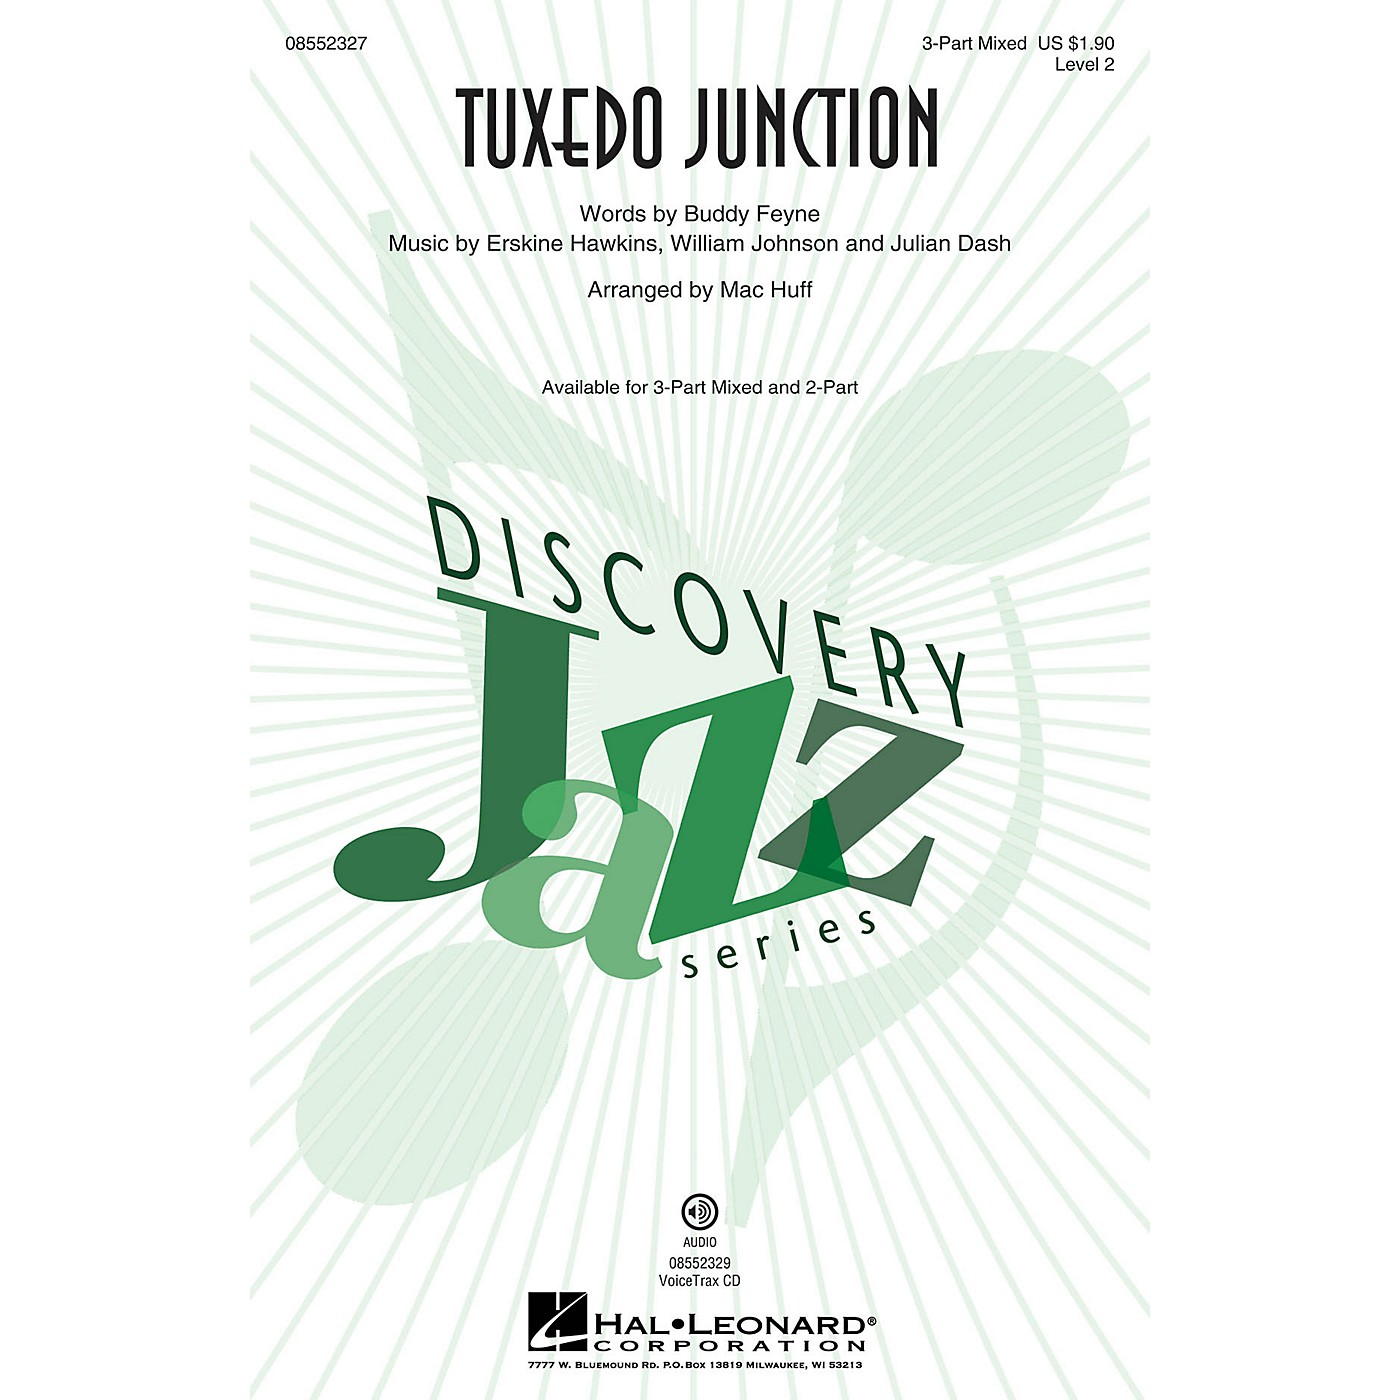 Hal Leonard Tuxedo Junction (Discovery Level 2) VoiceTrax CD by Manhattan Transfer Arranged by Mac Huff thumbnail